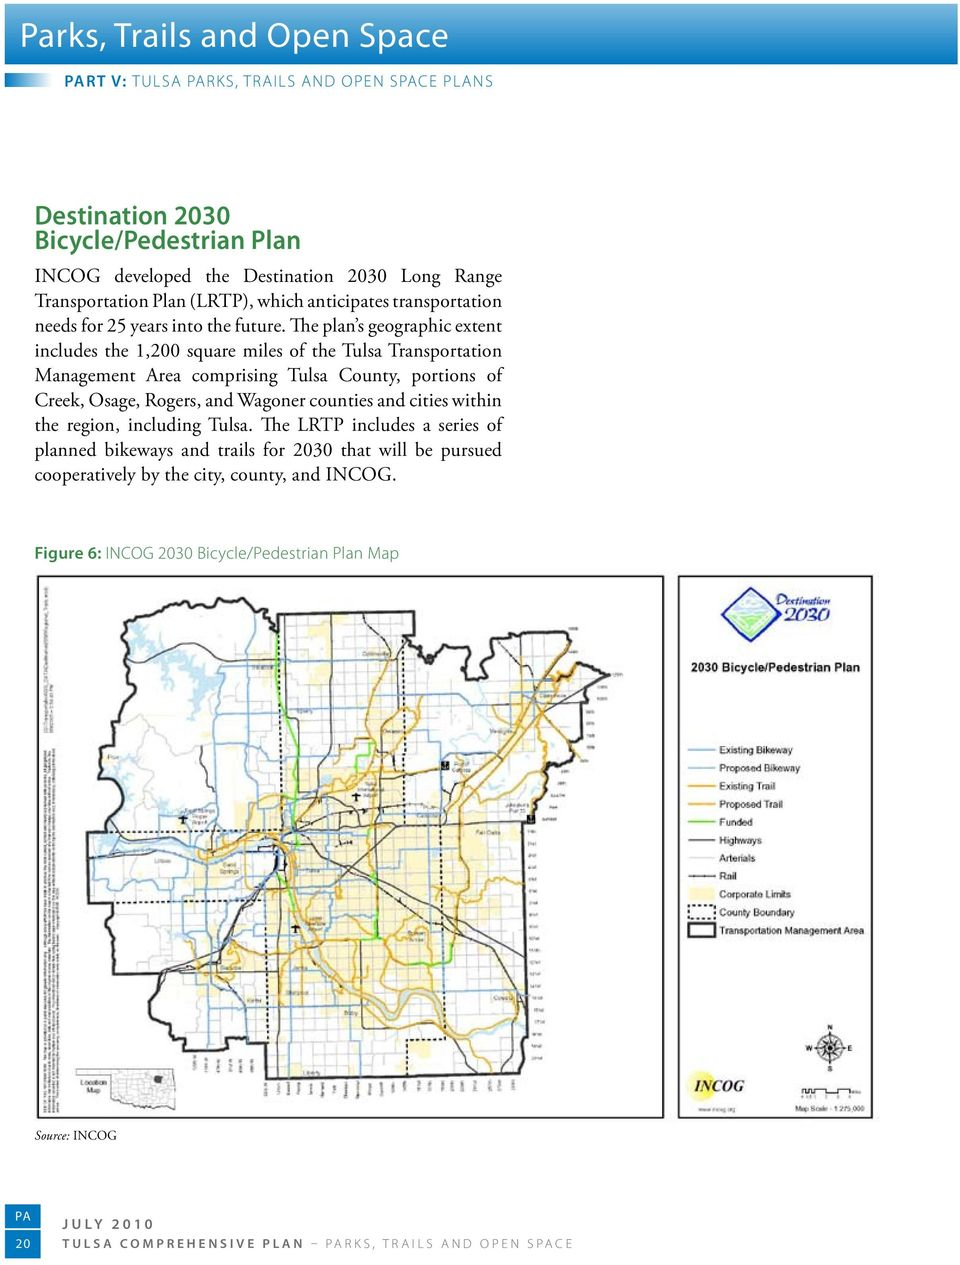 The plan s geographic extent includes the 1,200 square miles of the Tulsa Transportation Management Area comprising Tulsa County, portions of Creek, Osage, Rogers, and Wagoner